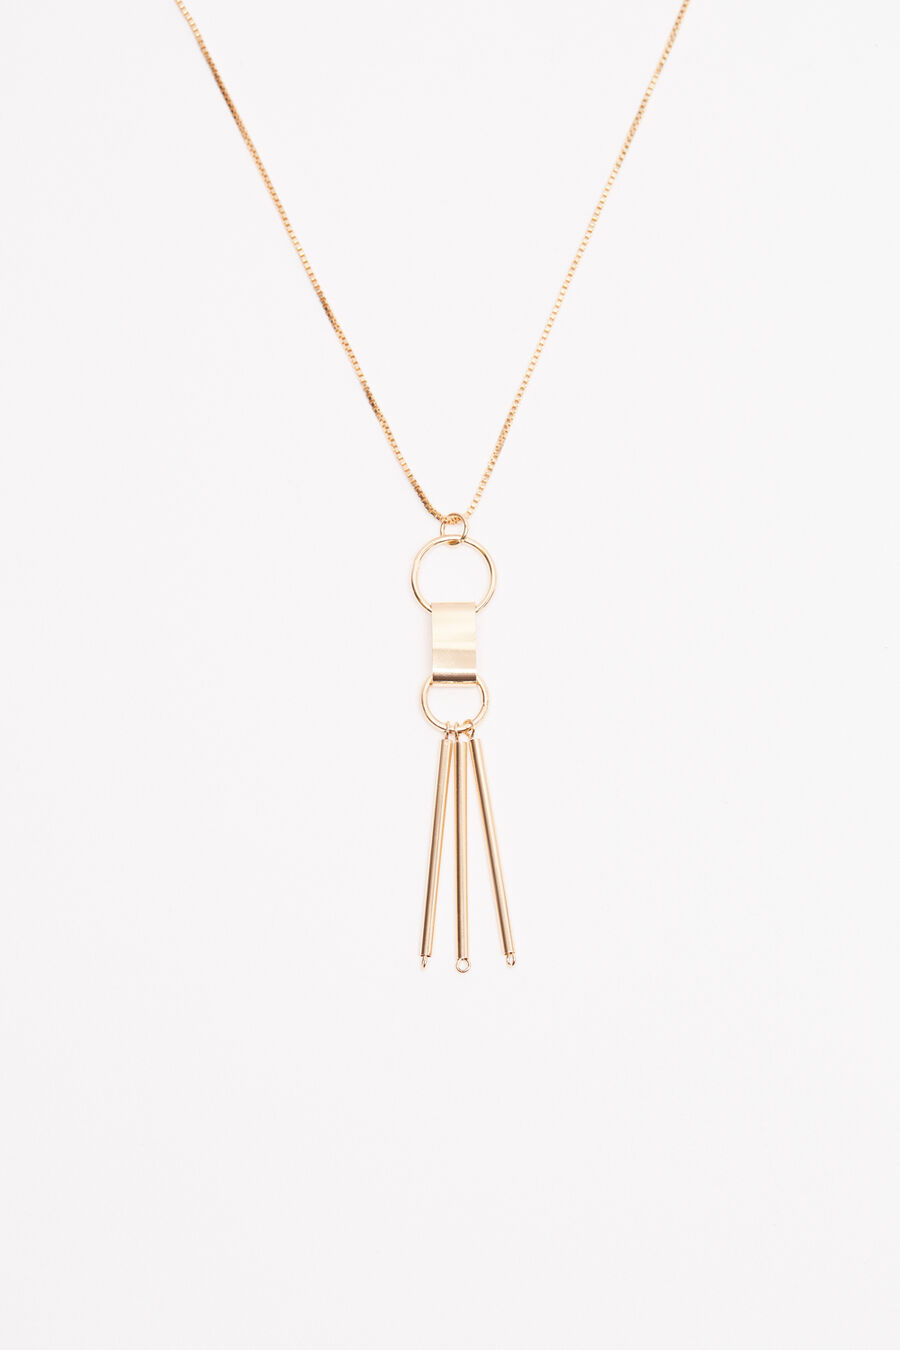 Fringes necklace